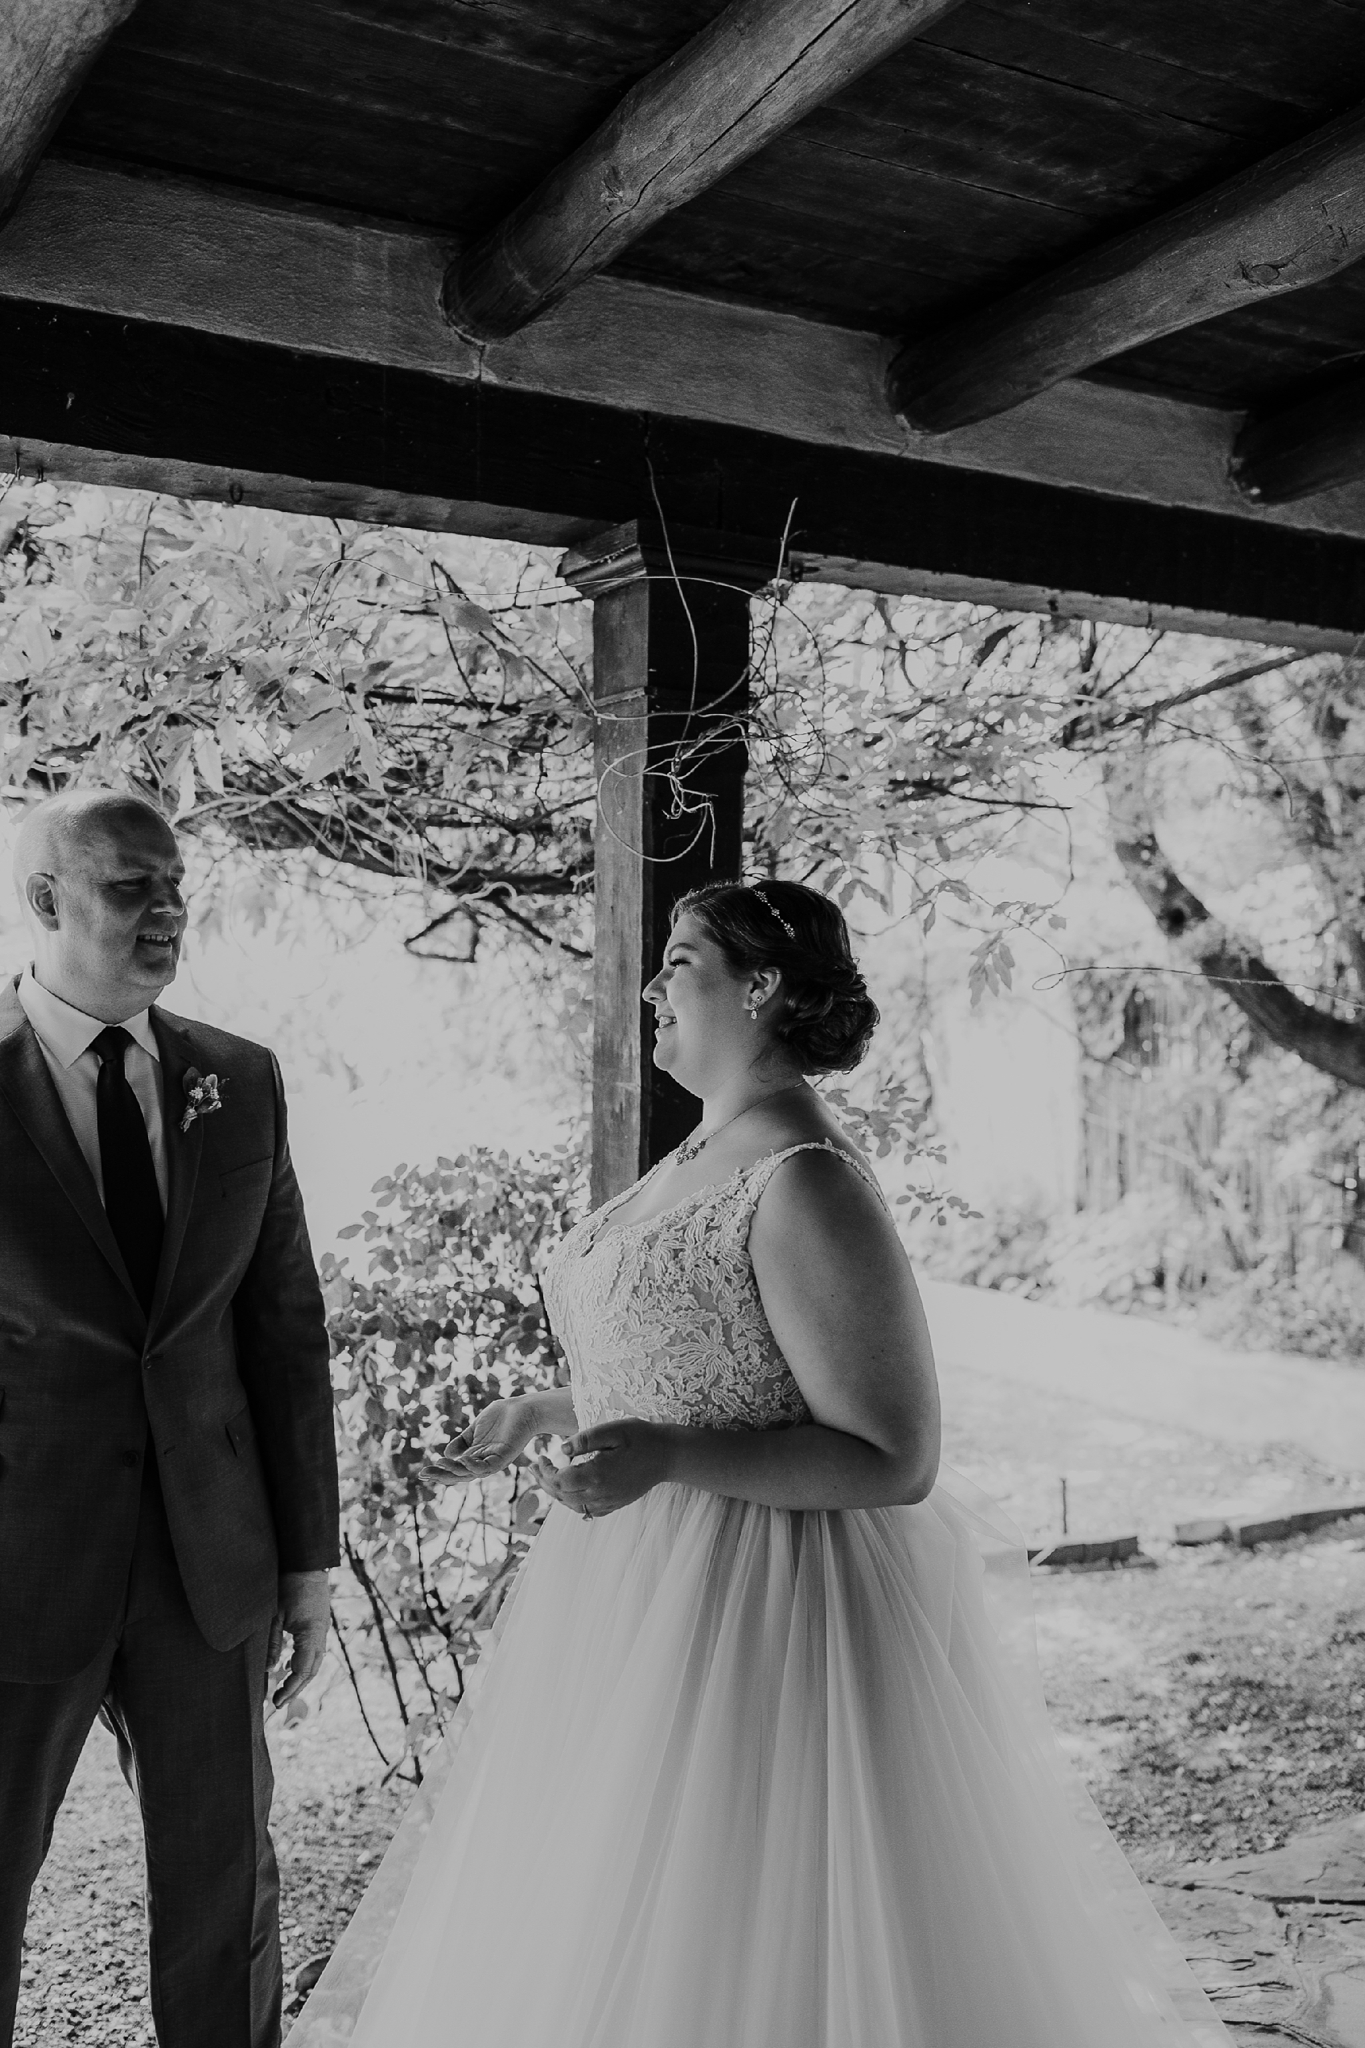 Alicia+lucia+photography+-+albuquerque+wedding+photographer+-+santa+fe+wedding+photography+-+new+mexico+wedding+photographer+-+new+mexico+wedding+-+summer+wedding+-+los+poblanos+wedding+-+albuquerque+wedding_0017.jpg